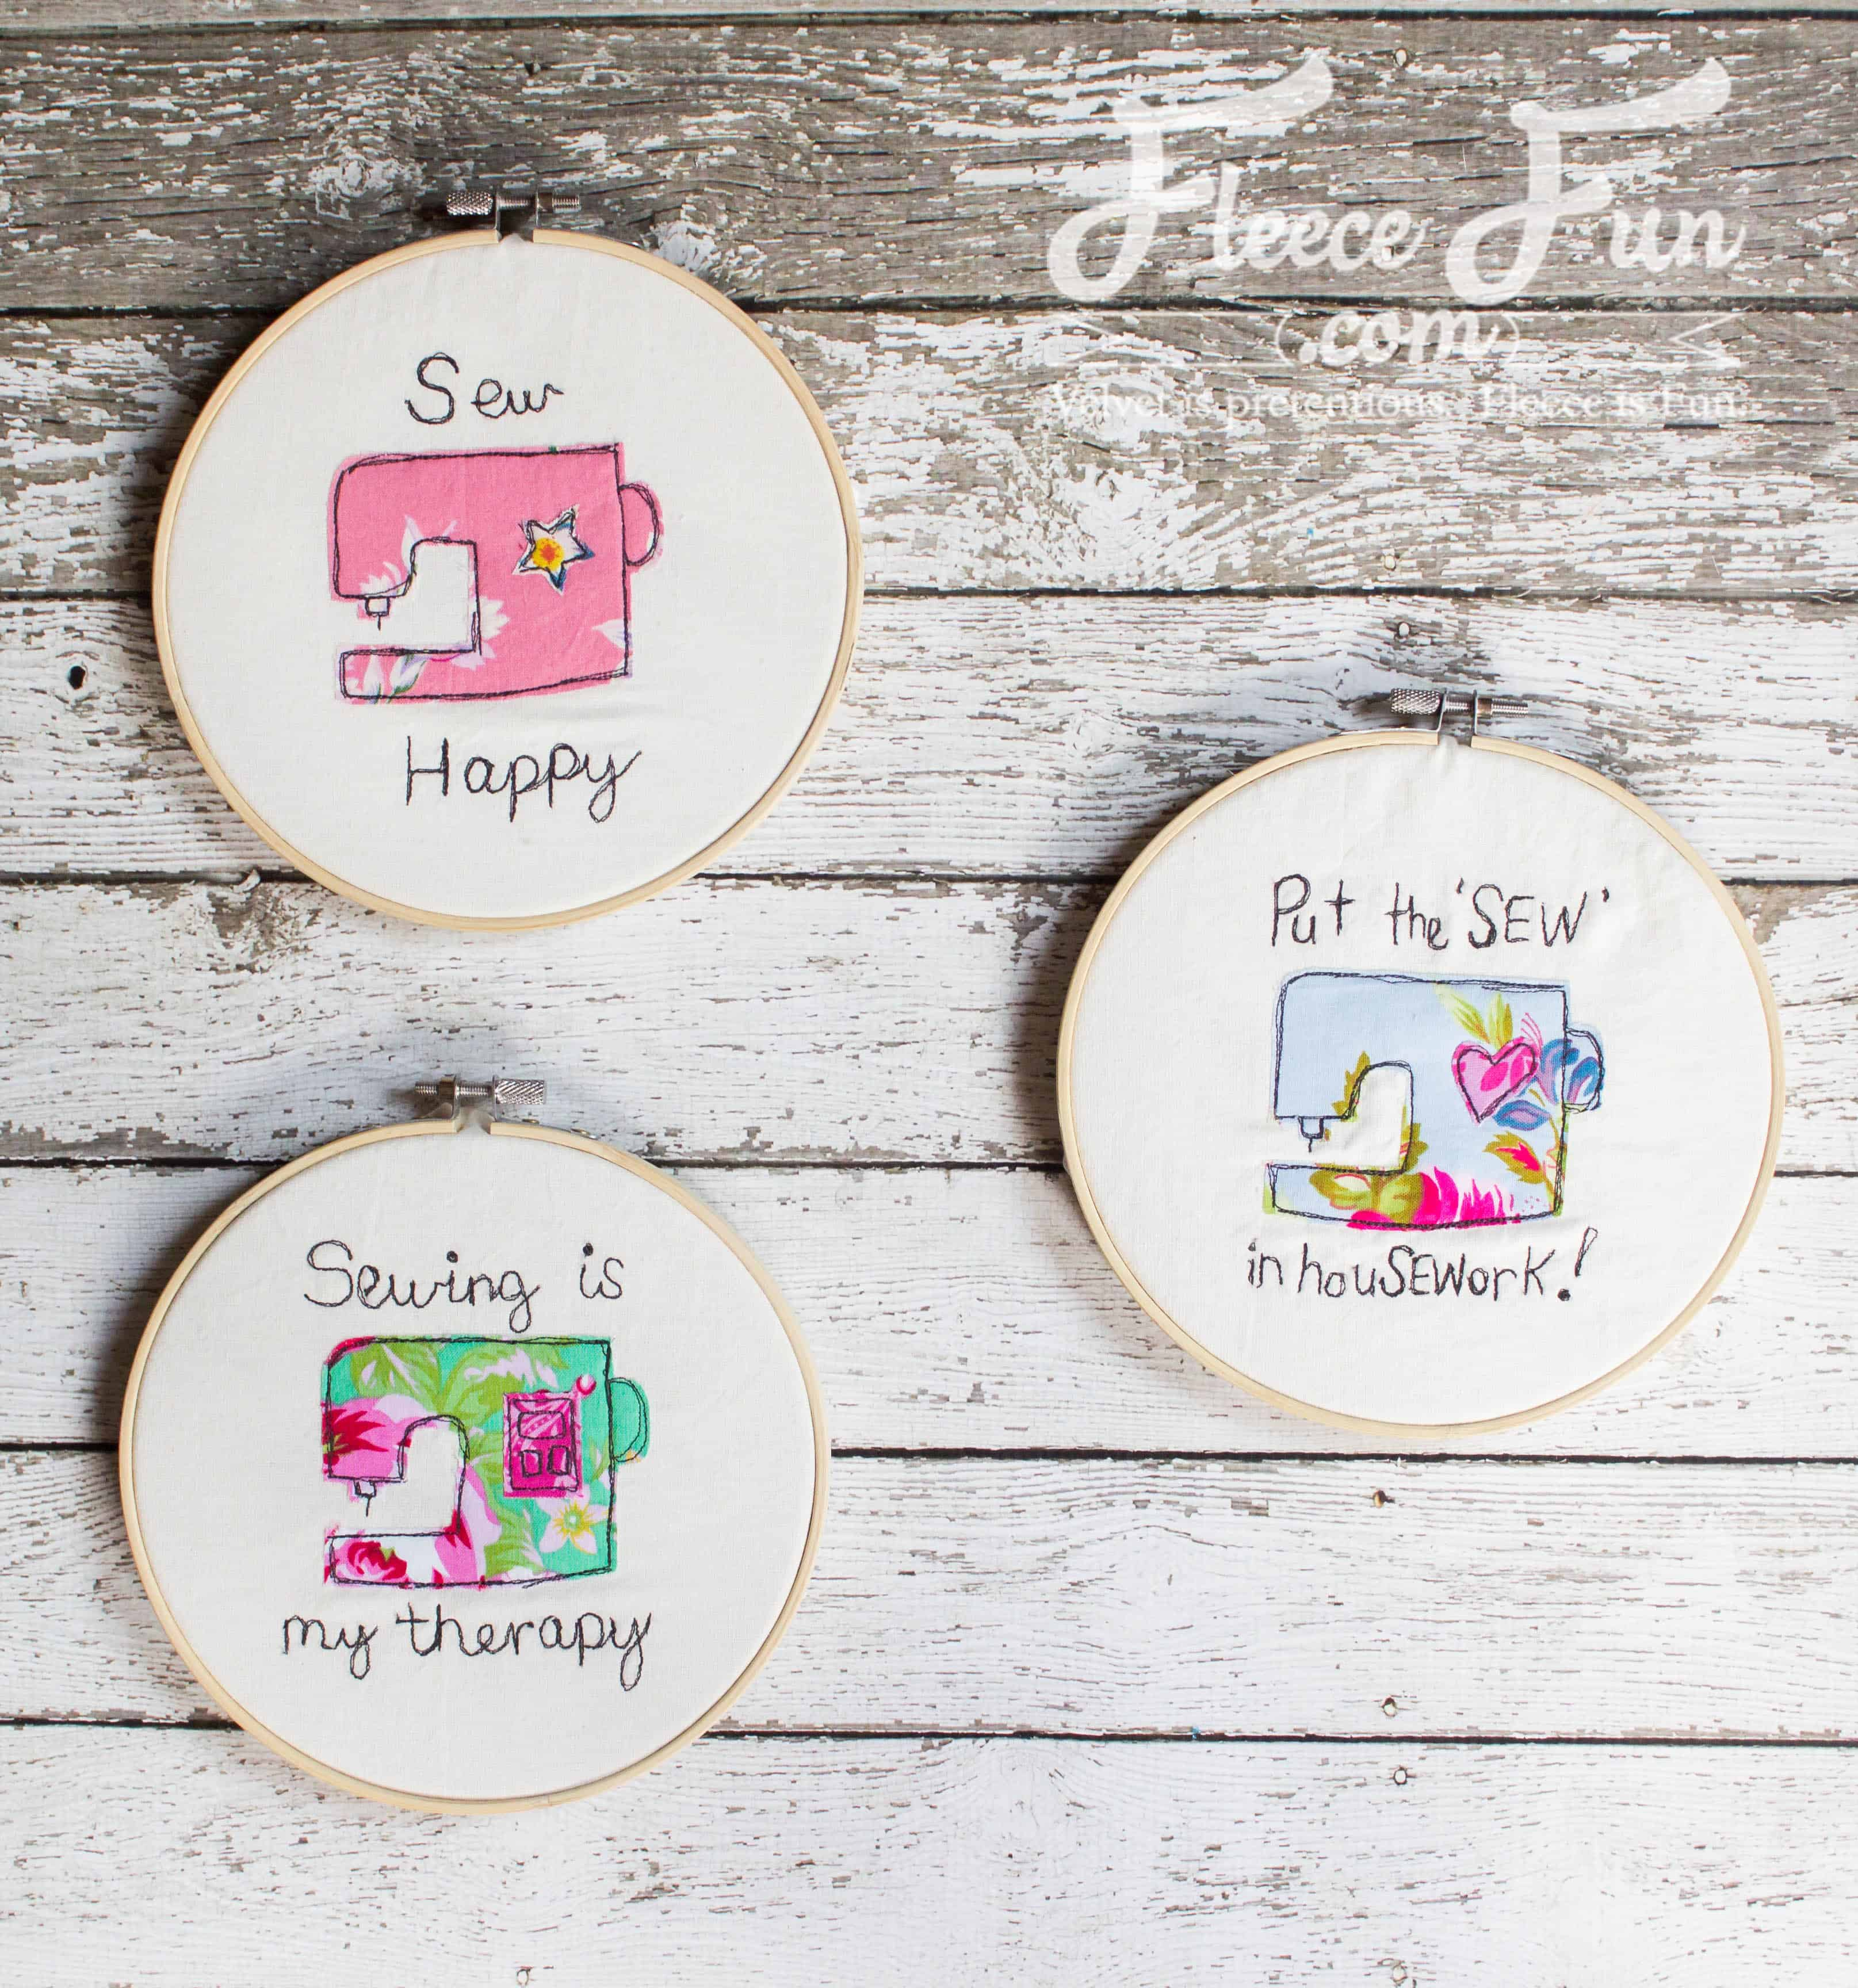 I love this Sewing Machine Hoop Art Tutorial. wonderful sewing project and handmade gift ideas for friends. This is perfect for a sewist's wall and sewing studio. #handmade #handmadewithlove #handmadeisbetter #handmadegifts #handmadegiftsarethebest #sewing #sewingproject #sewcialist #sewr #freemotion #freemotionquilting